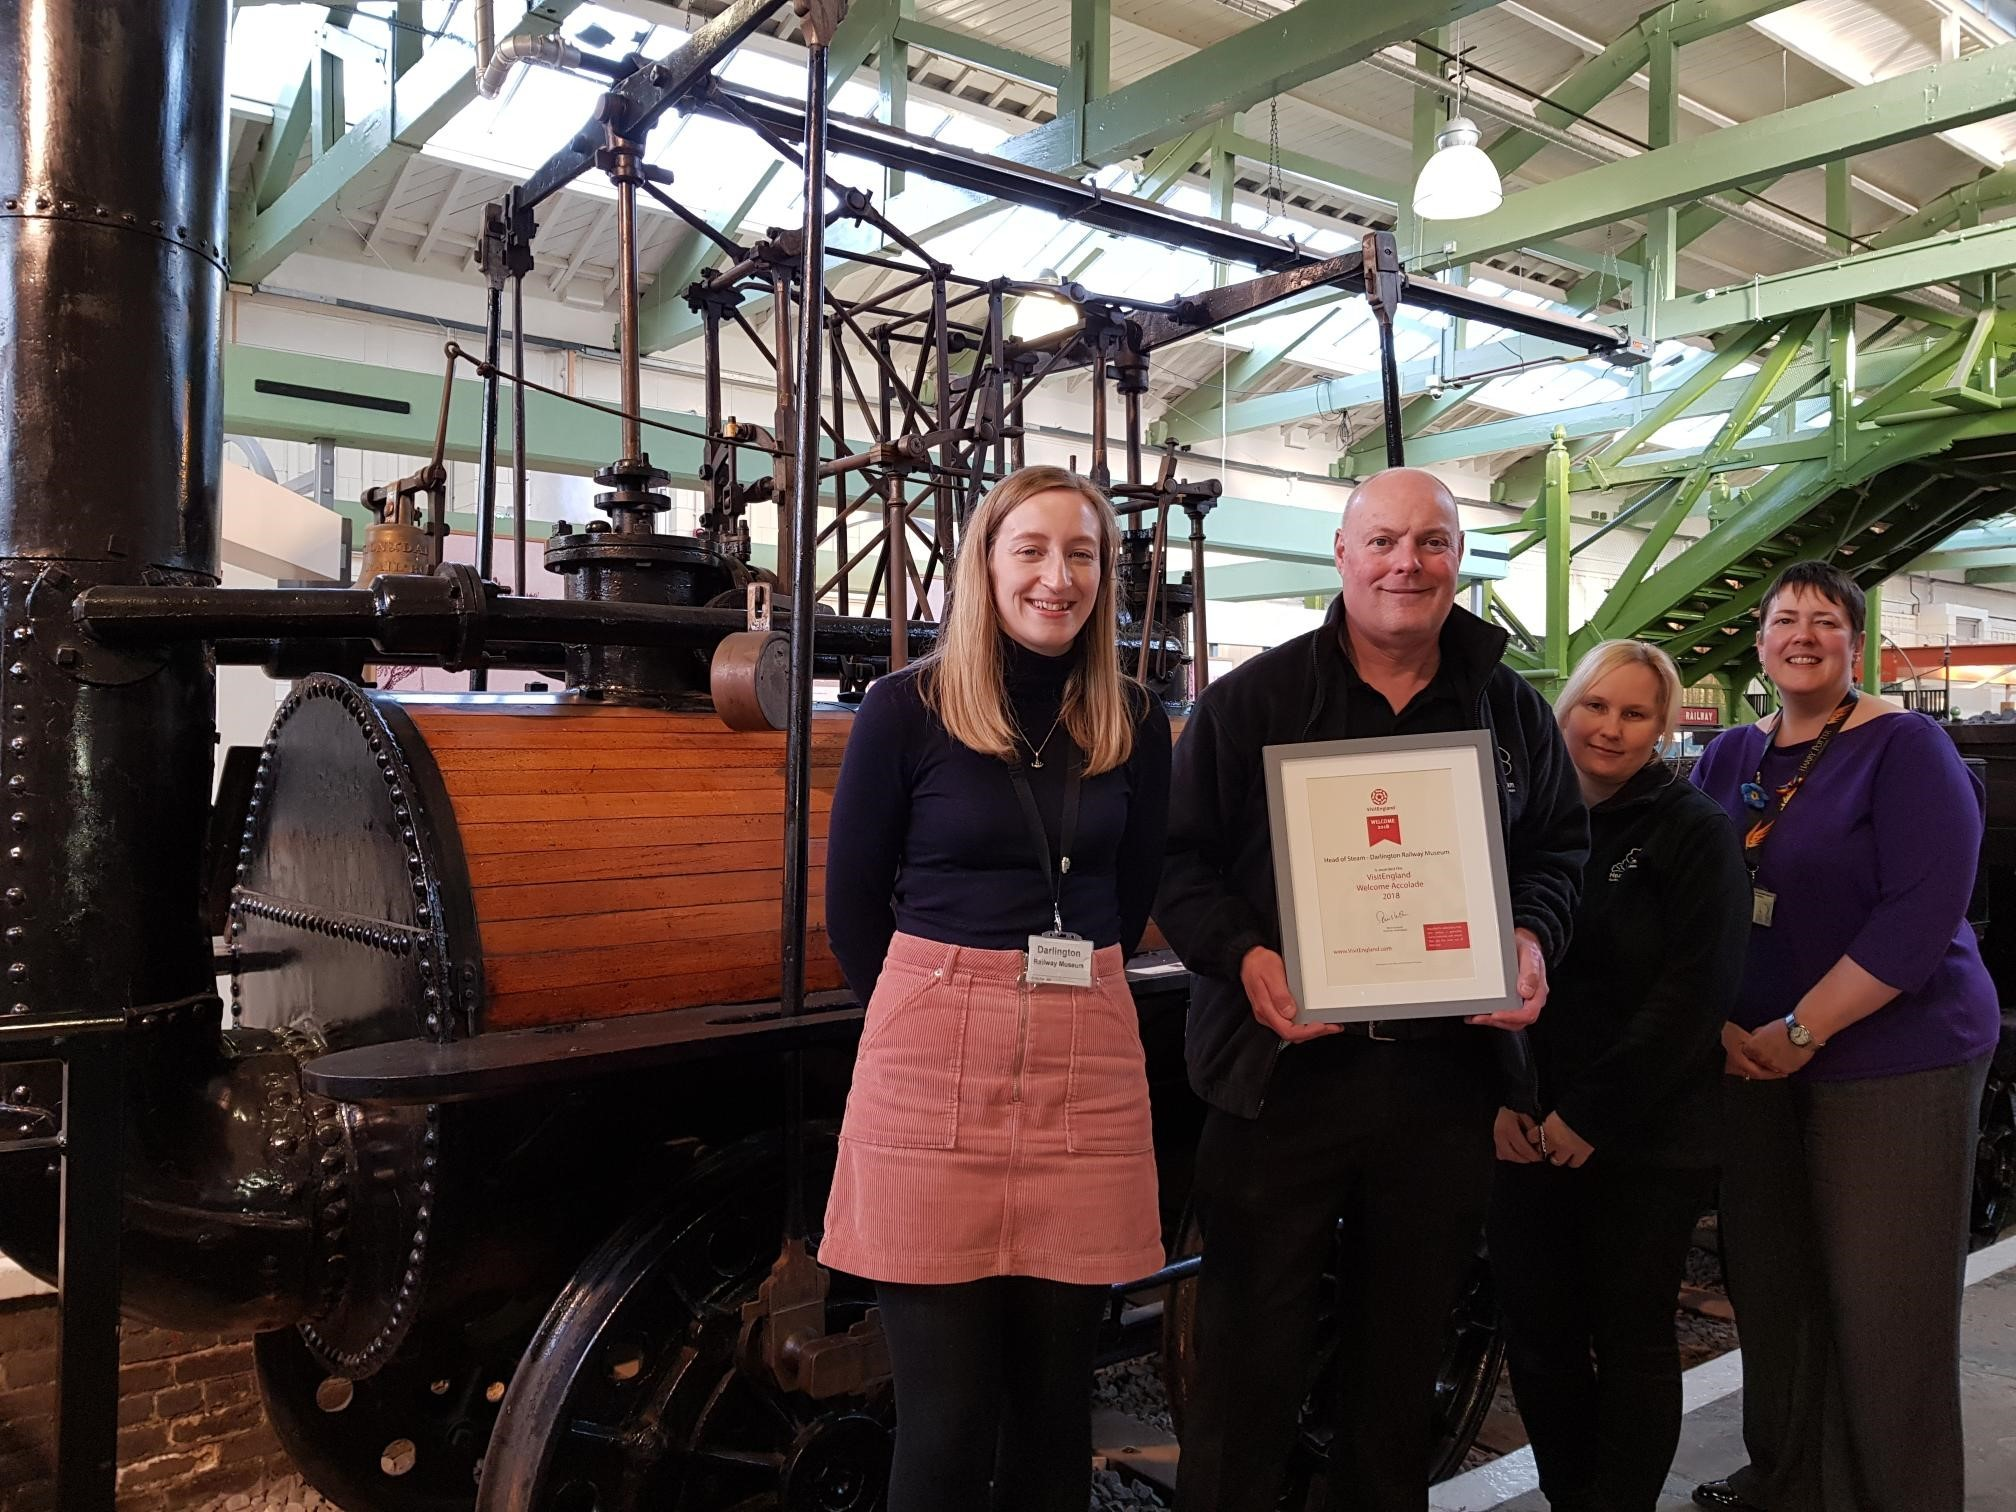 PRIZED ACCOLADE: Head of Steam staff Alison Grange, Les Hardman, Kelly McStravick and Sarah Gouldsbrough with the VisitEngland Welcome Accolade certificate